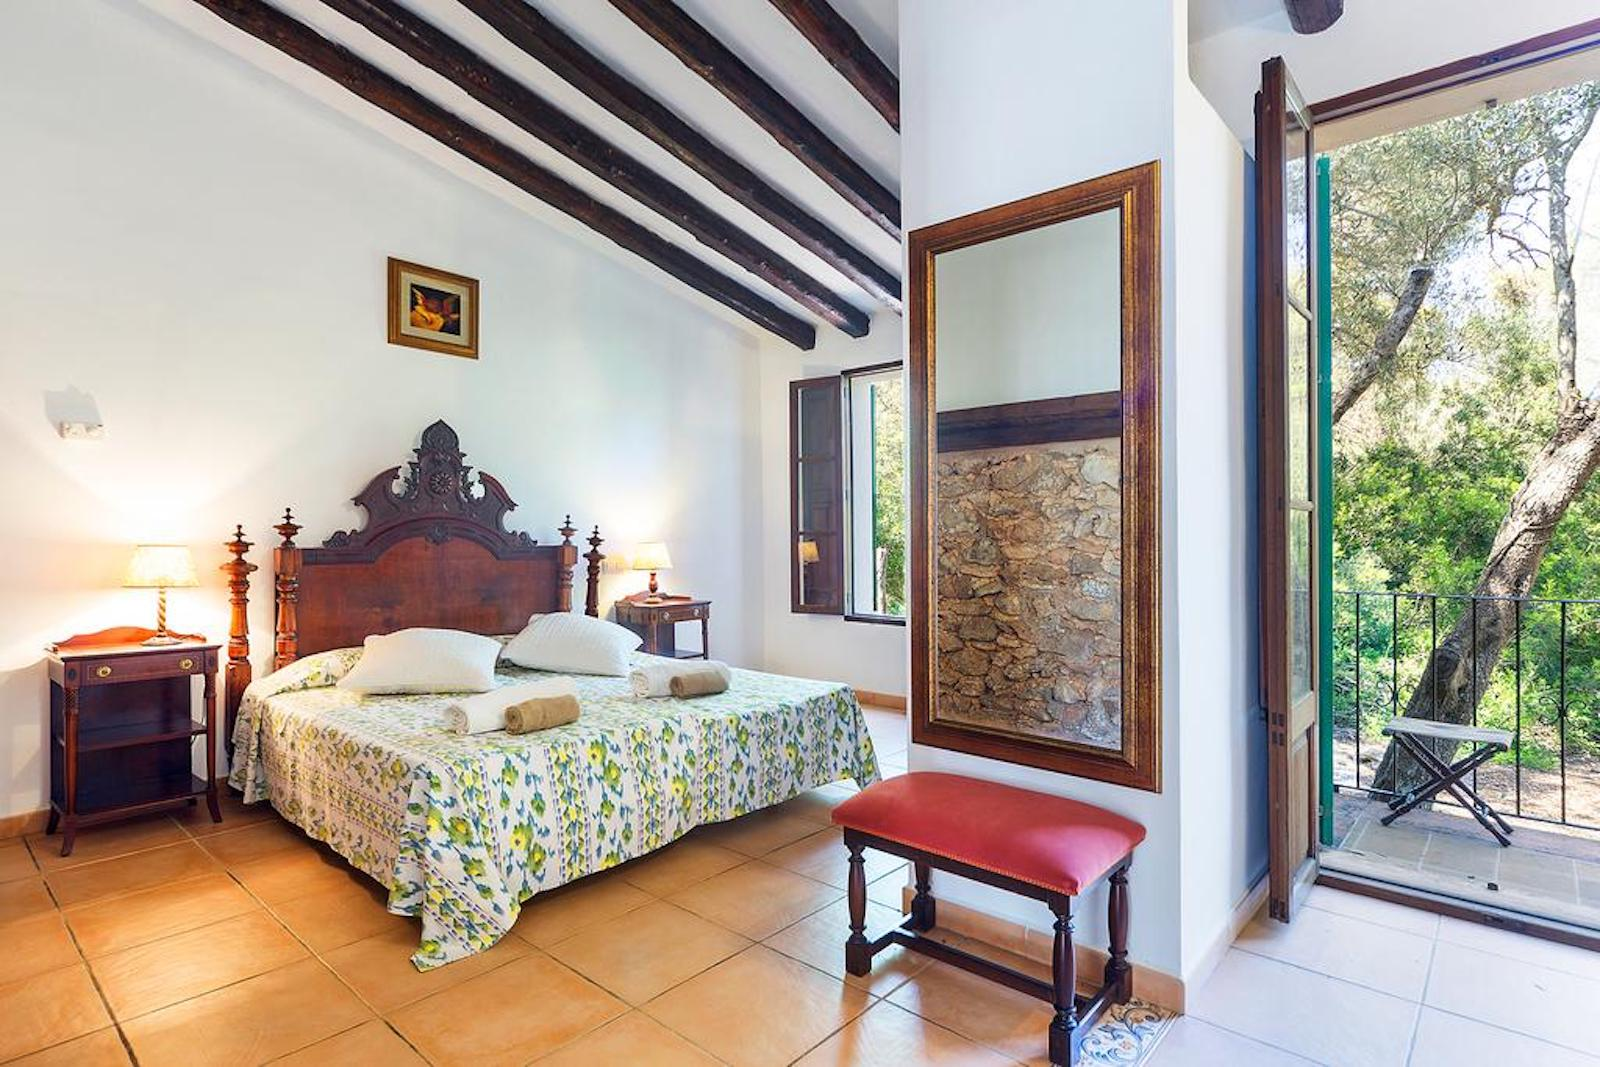 ISLA-Travel-Finca-Hotel-Mallorca-Juniorsuite3